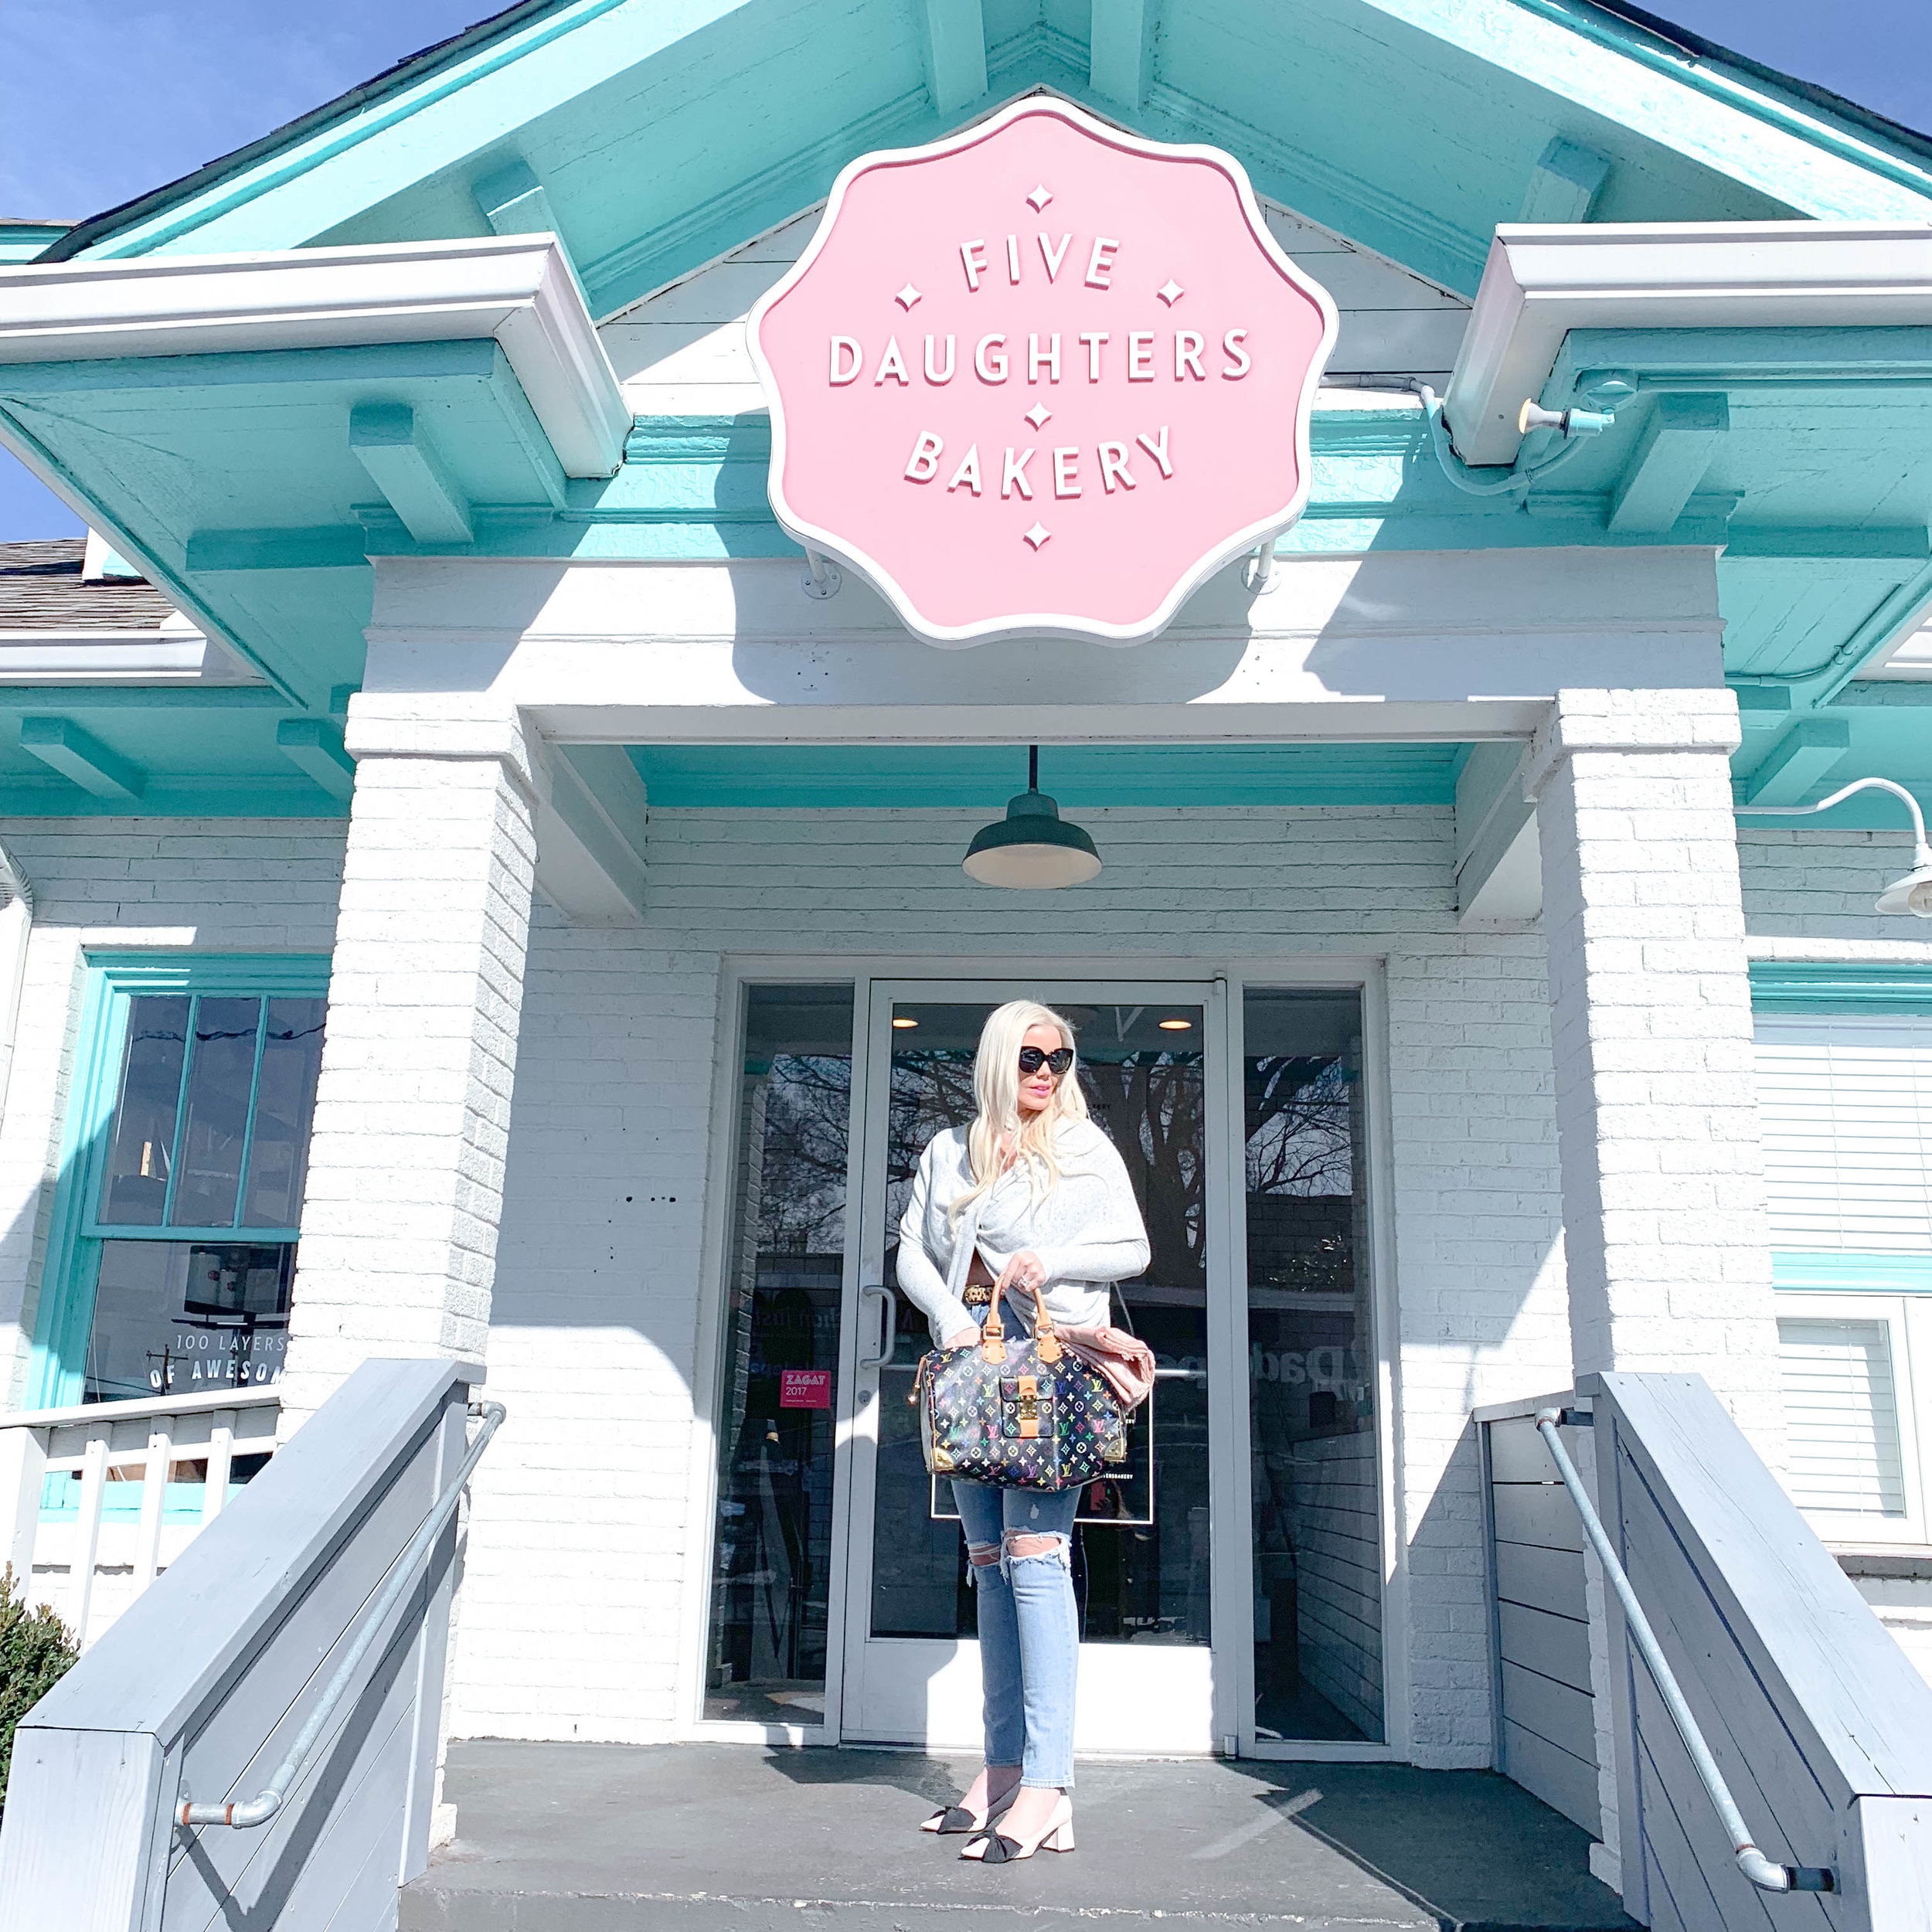 Caroline-doll-travel-nashville-bakery.jpg